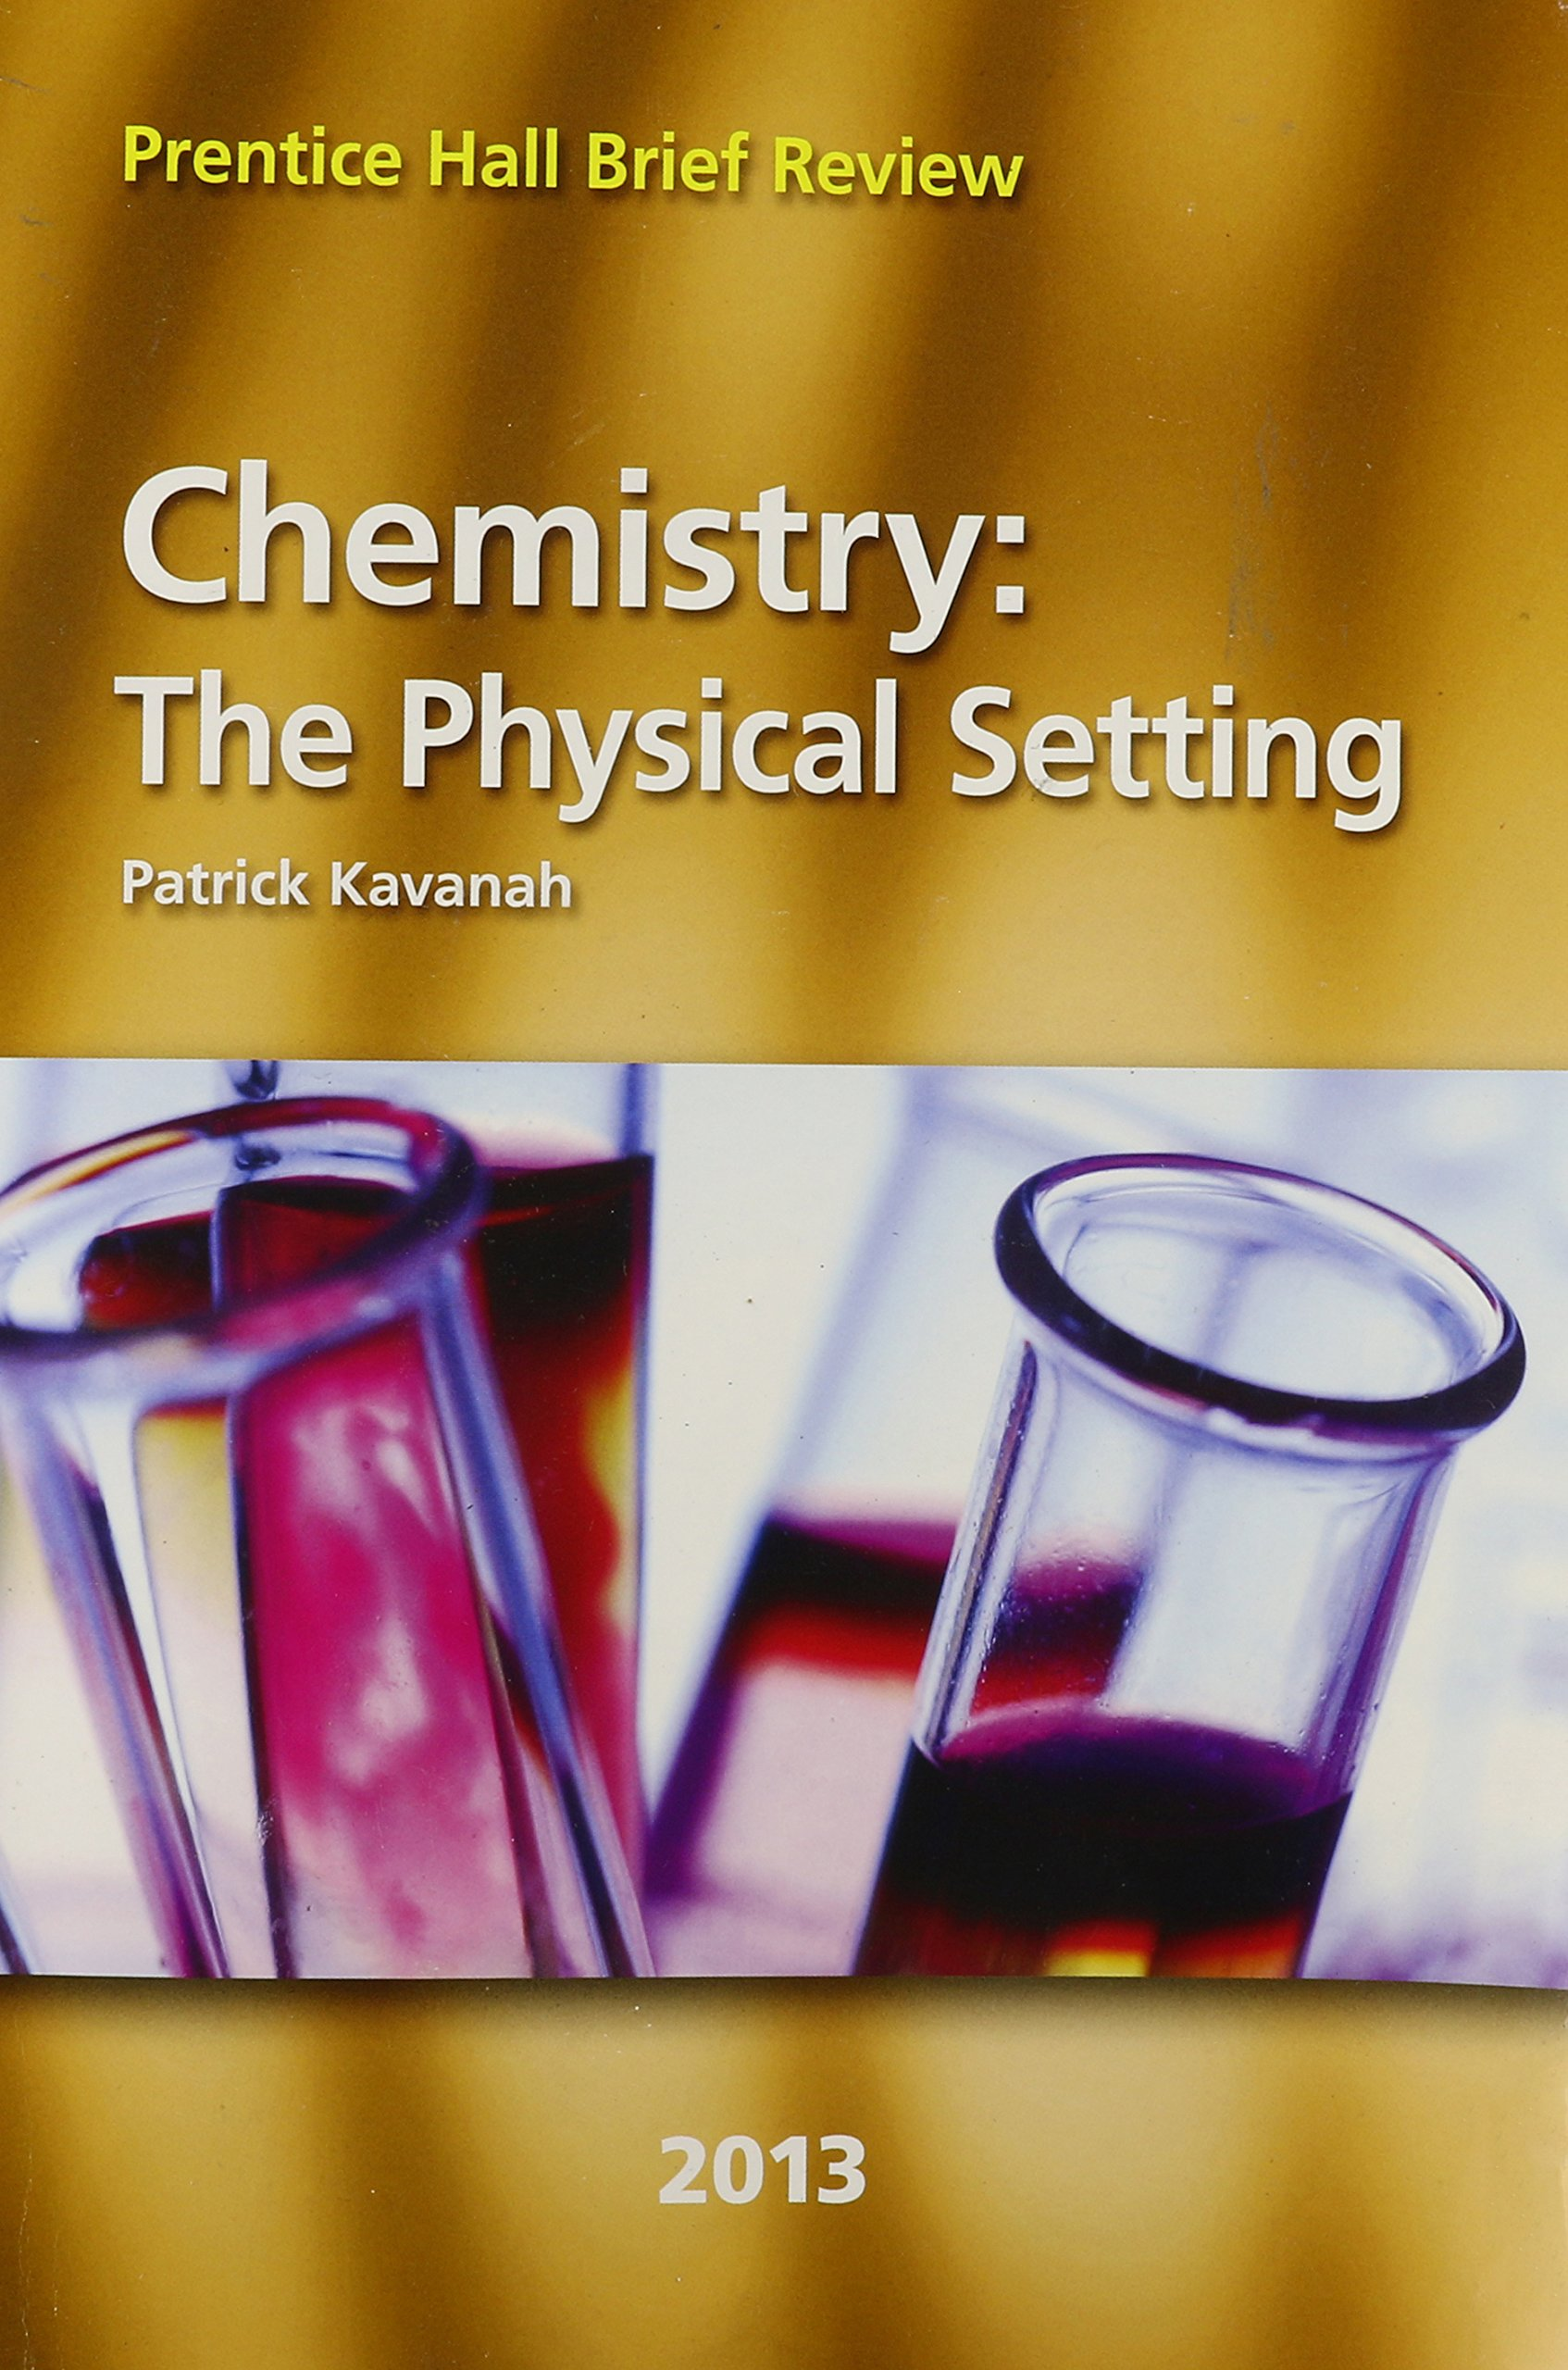 Chemistry the physical setting 2013 prentice hall brief review for chemistry the physical setting 2013 prentice hall brief review for the new york regents exam patrick kavanah 9780133233308 amazon books fandeluxe Images